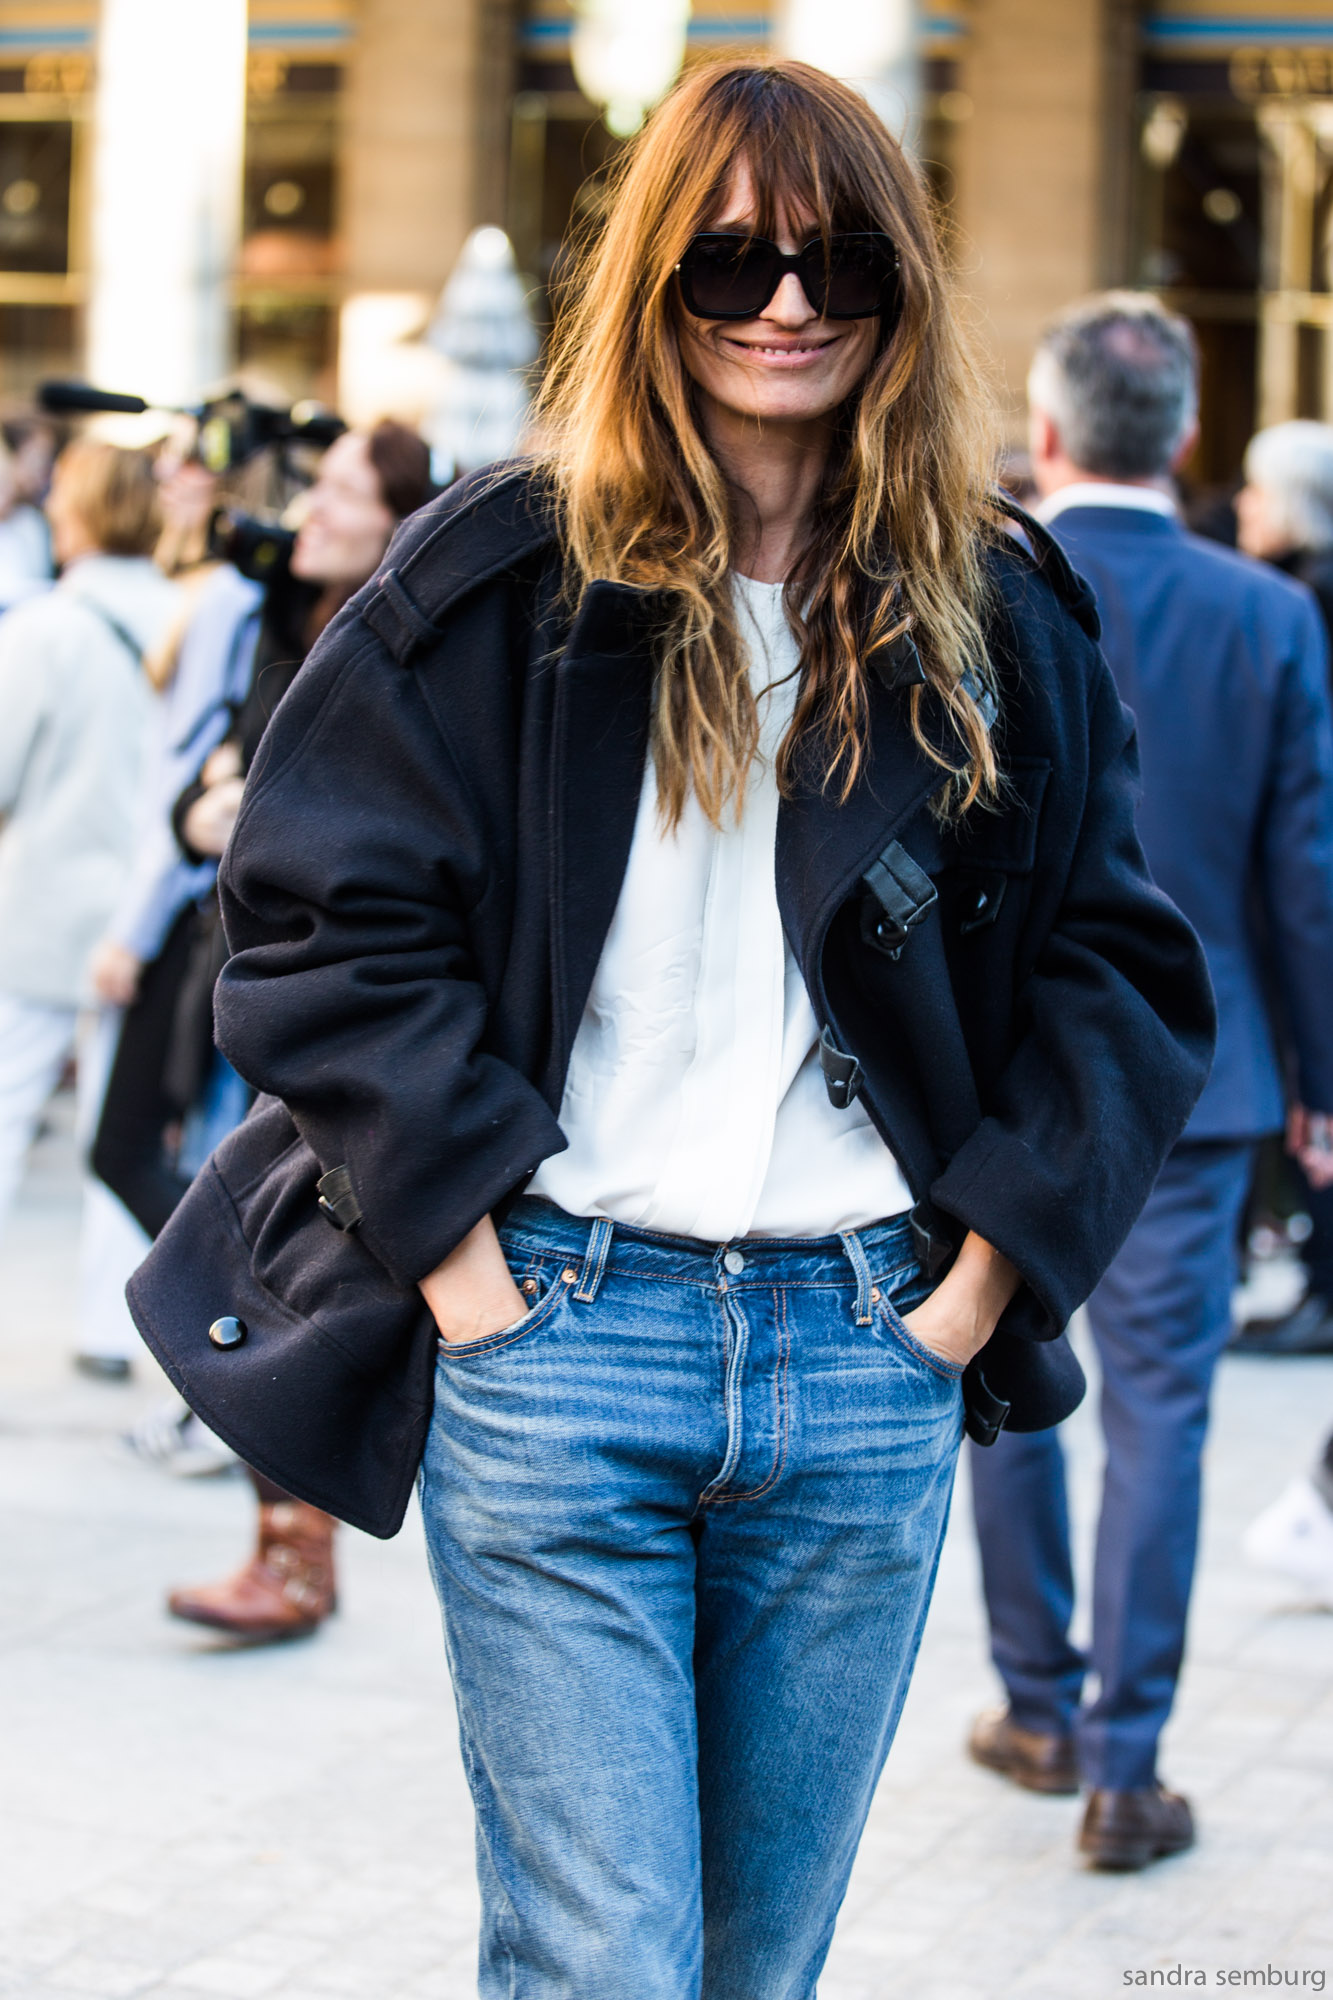 ParisFW_SS2016_day3_sandrasemburg-20151002-2832.jpeg